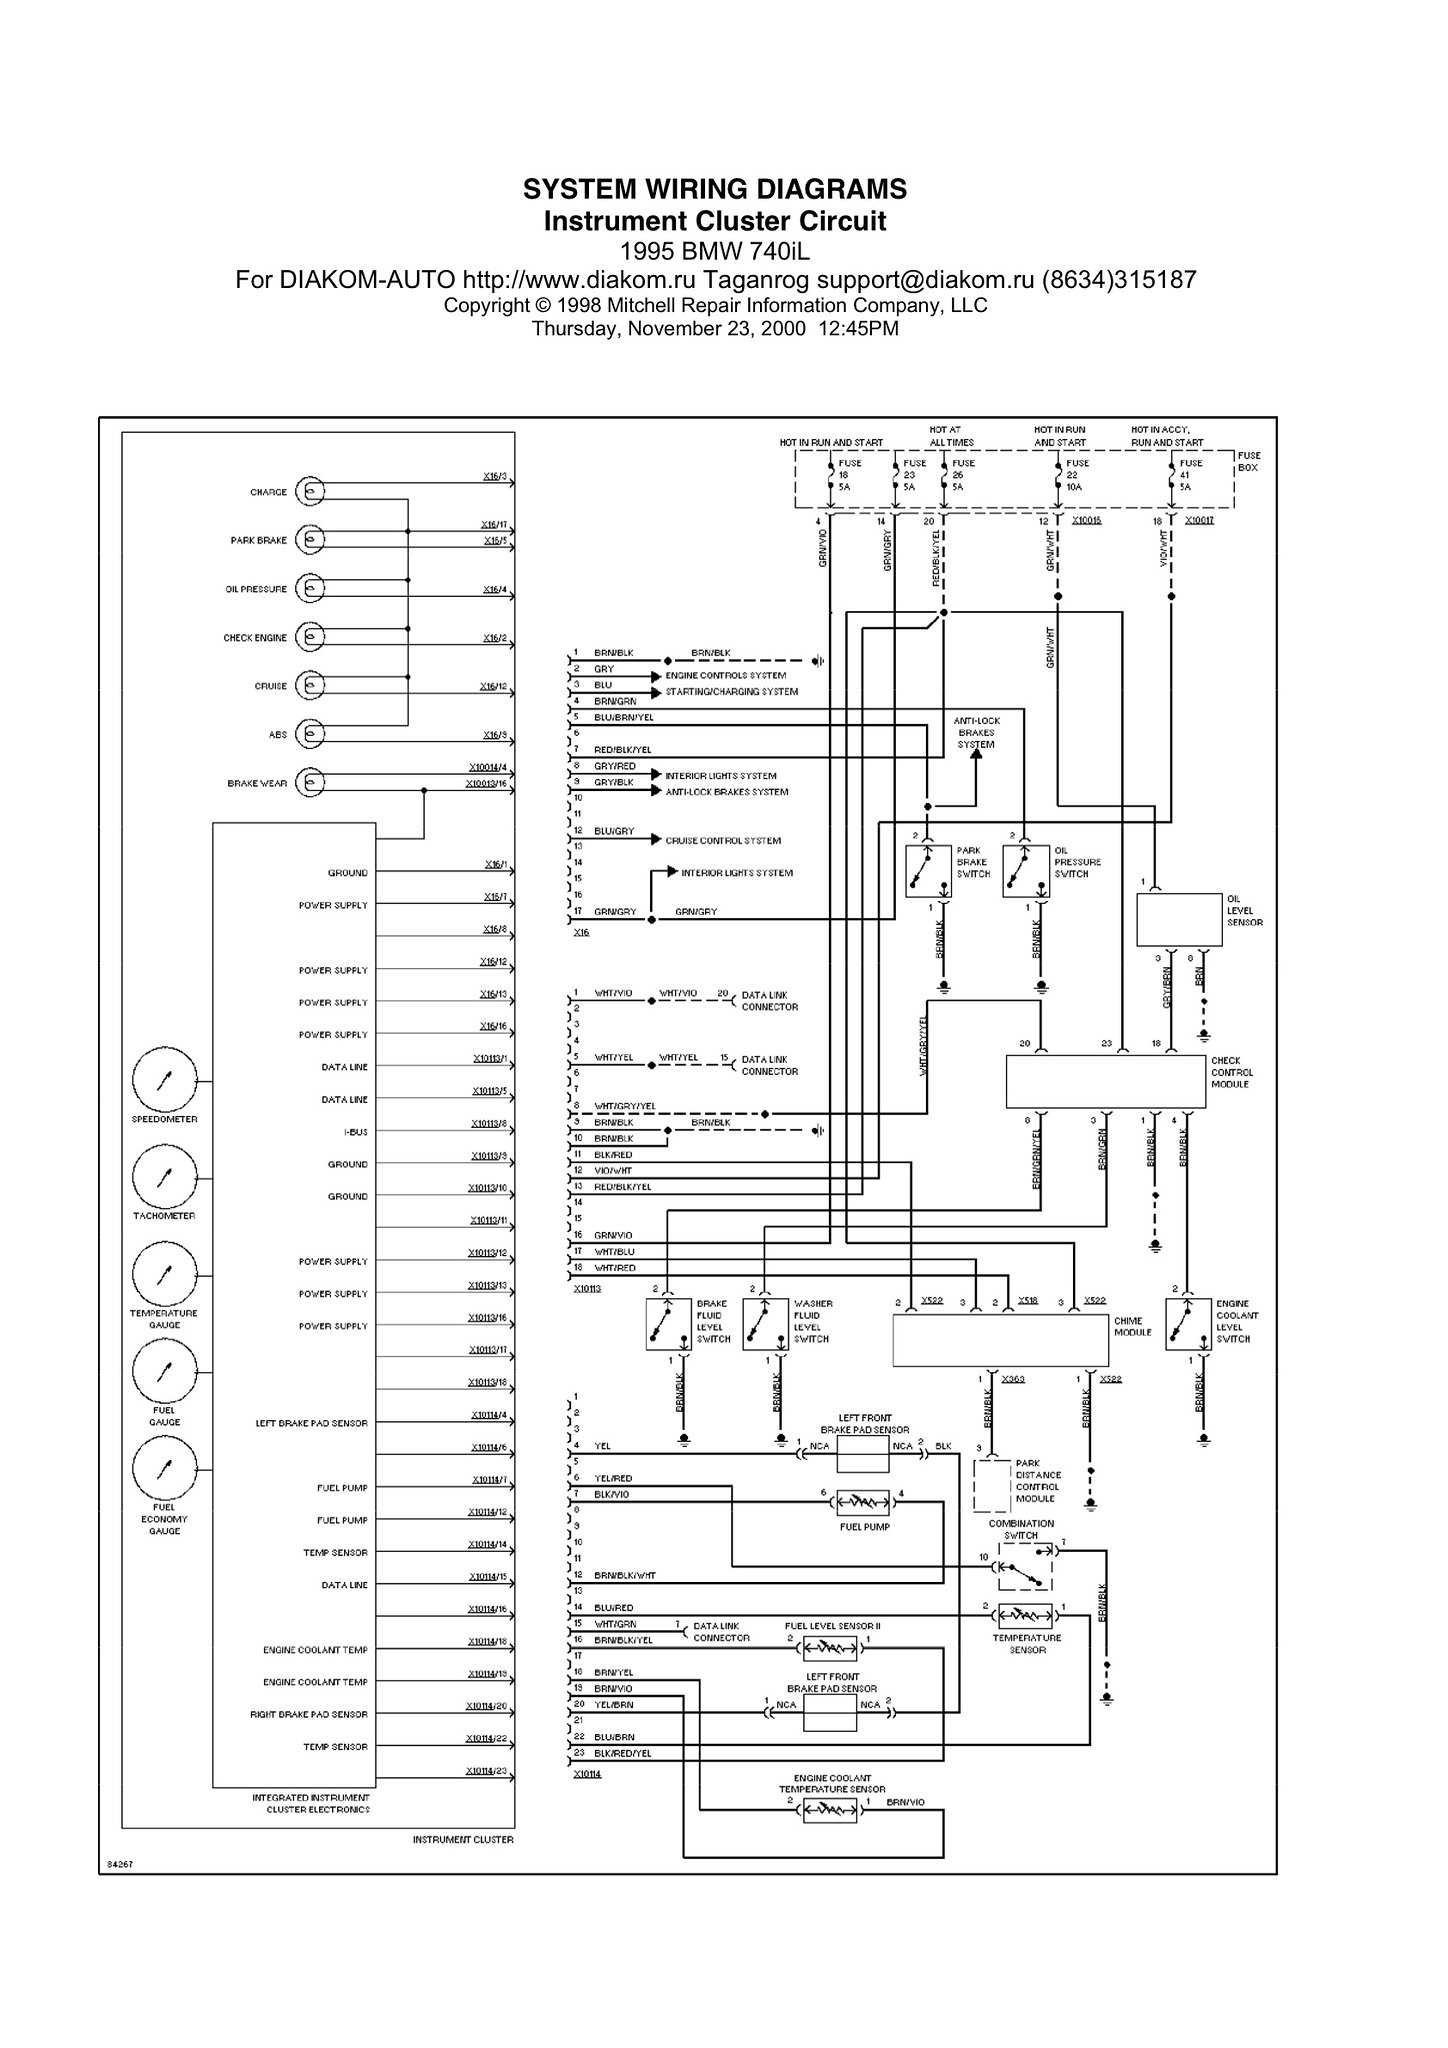 7703585142_dbc4ceb414_k bmw e39 wiring diagrams 1998 740i heated seat wiring diagram 2004 bmw 530i wiring diagrams at mifinder.co